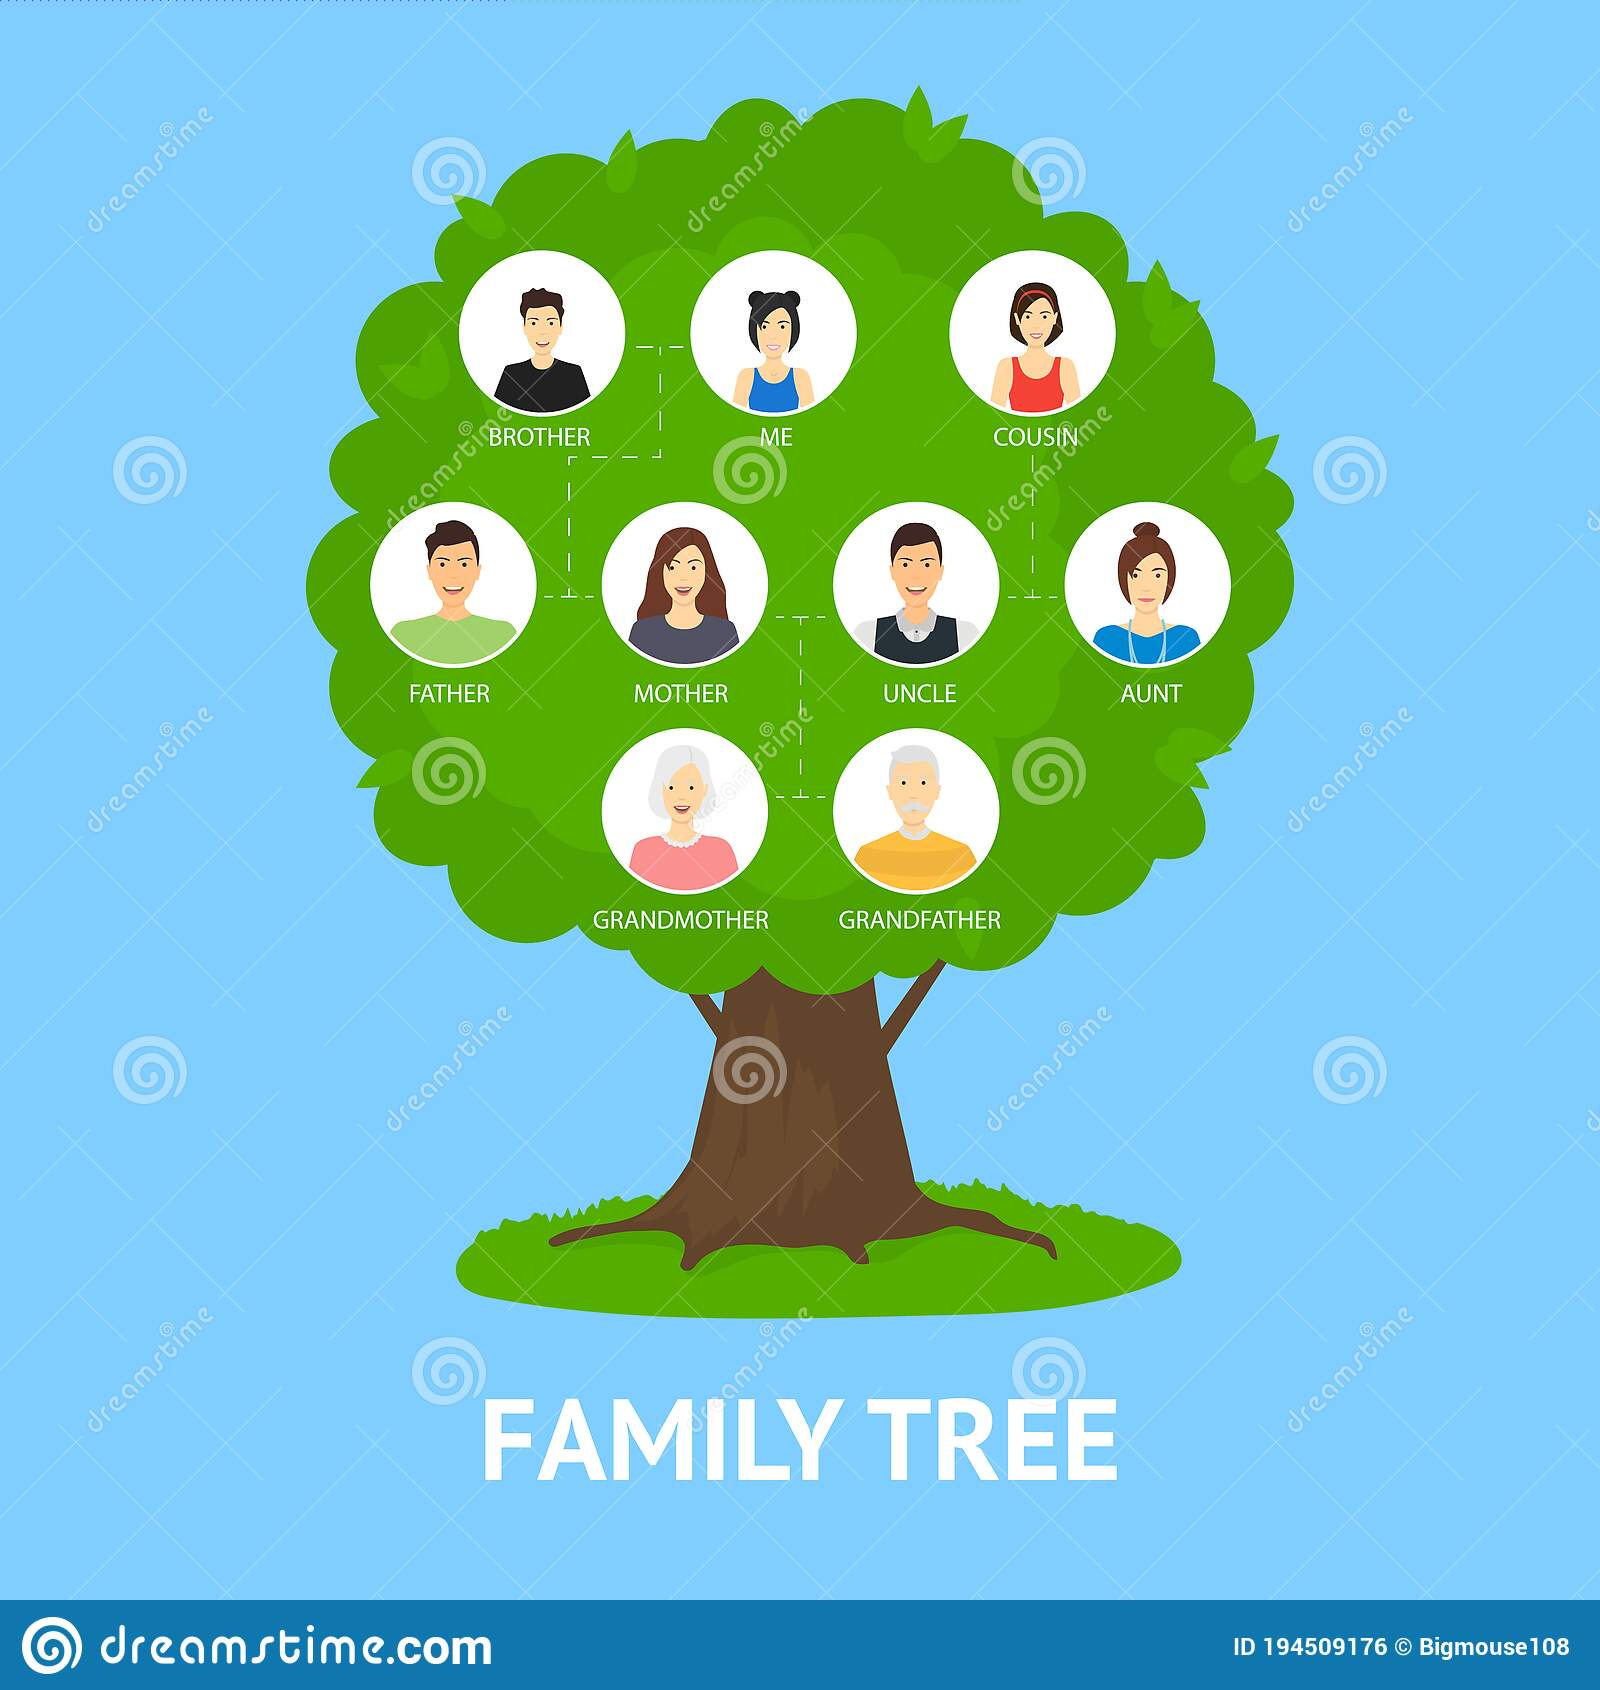 Cartoon Family Tree Stock Illustrations 19 575 Cartoon Family Tree Stock Illustrations Vectors Clipart Dreamstime Download a free preview or high quality adobe illustrator ai, eps, pdf and high resolution jpeg versions. dreamstime com